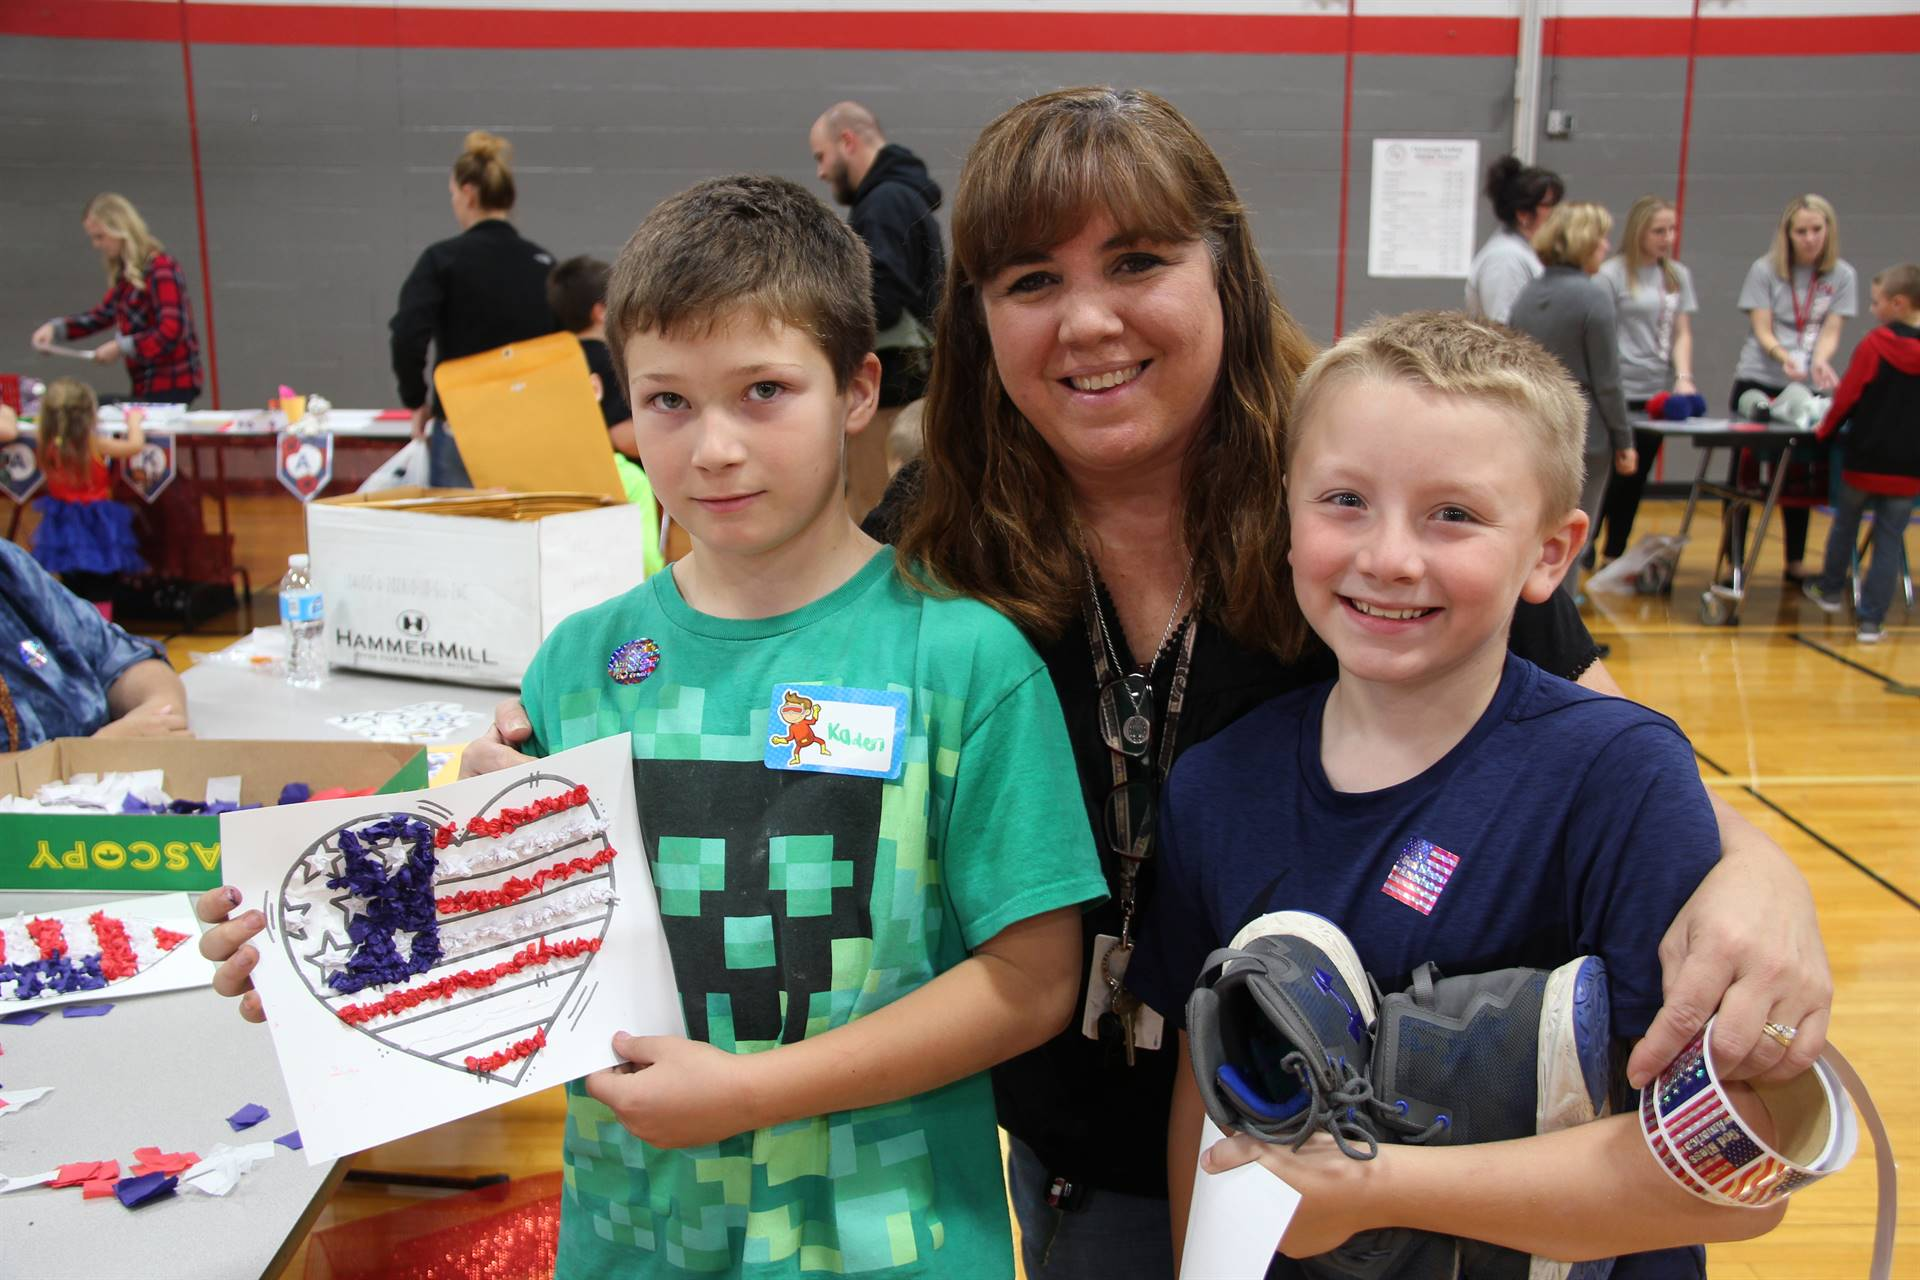 woman and two boys smile one boy holding american flag heart